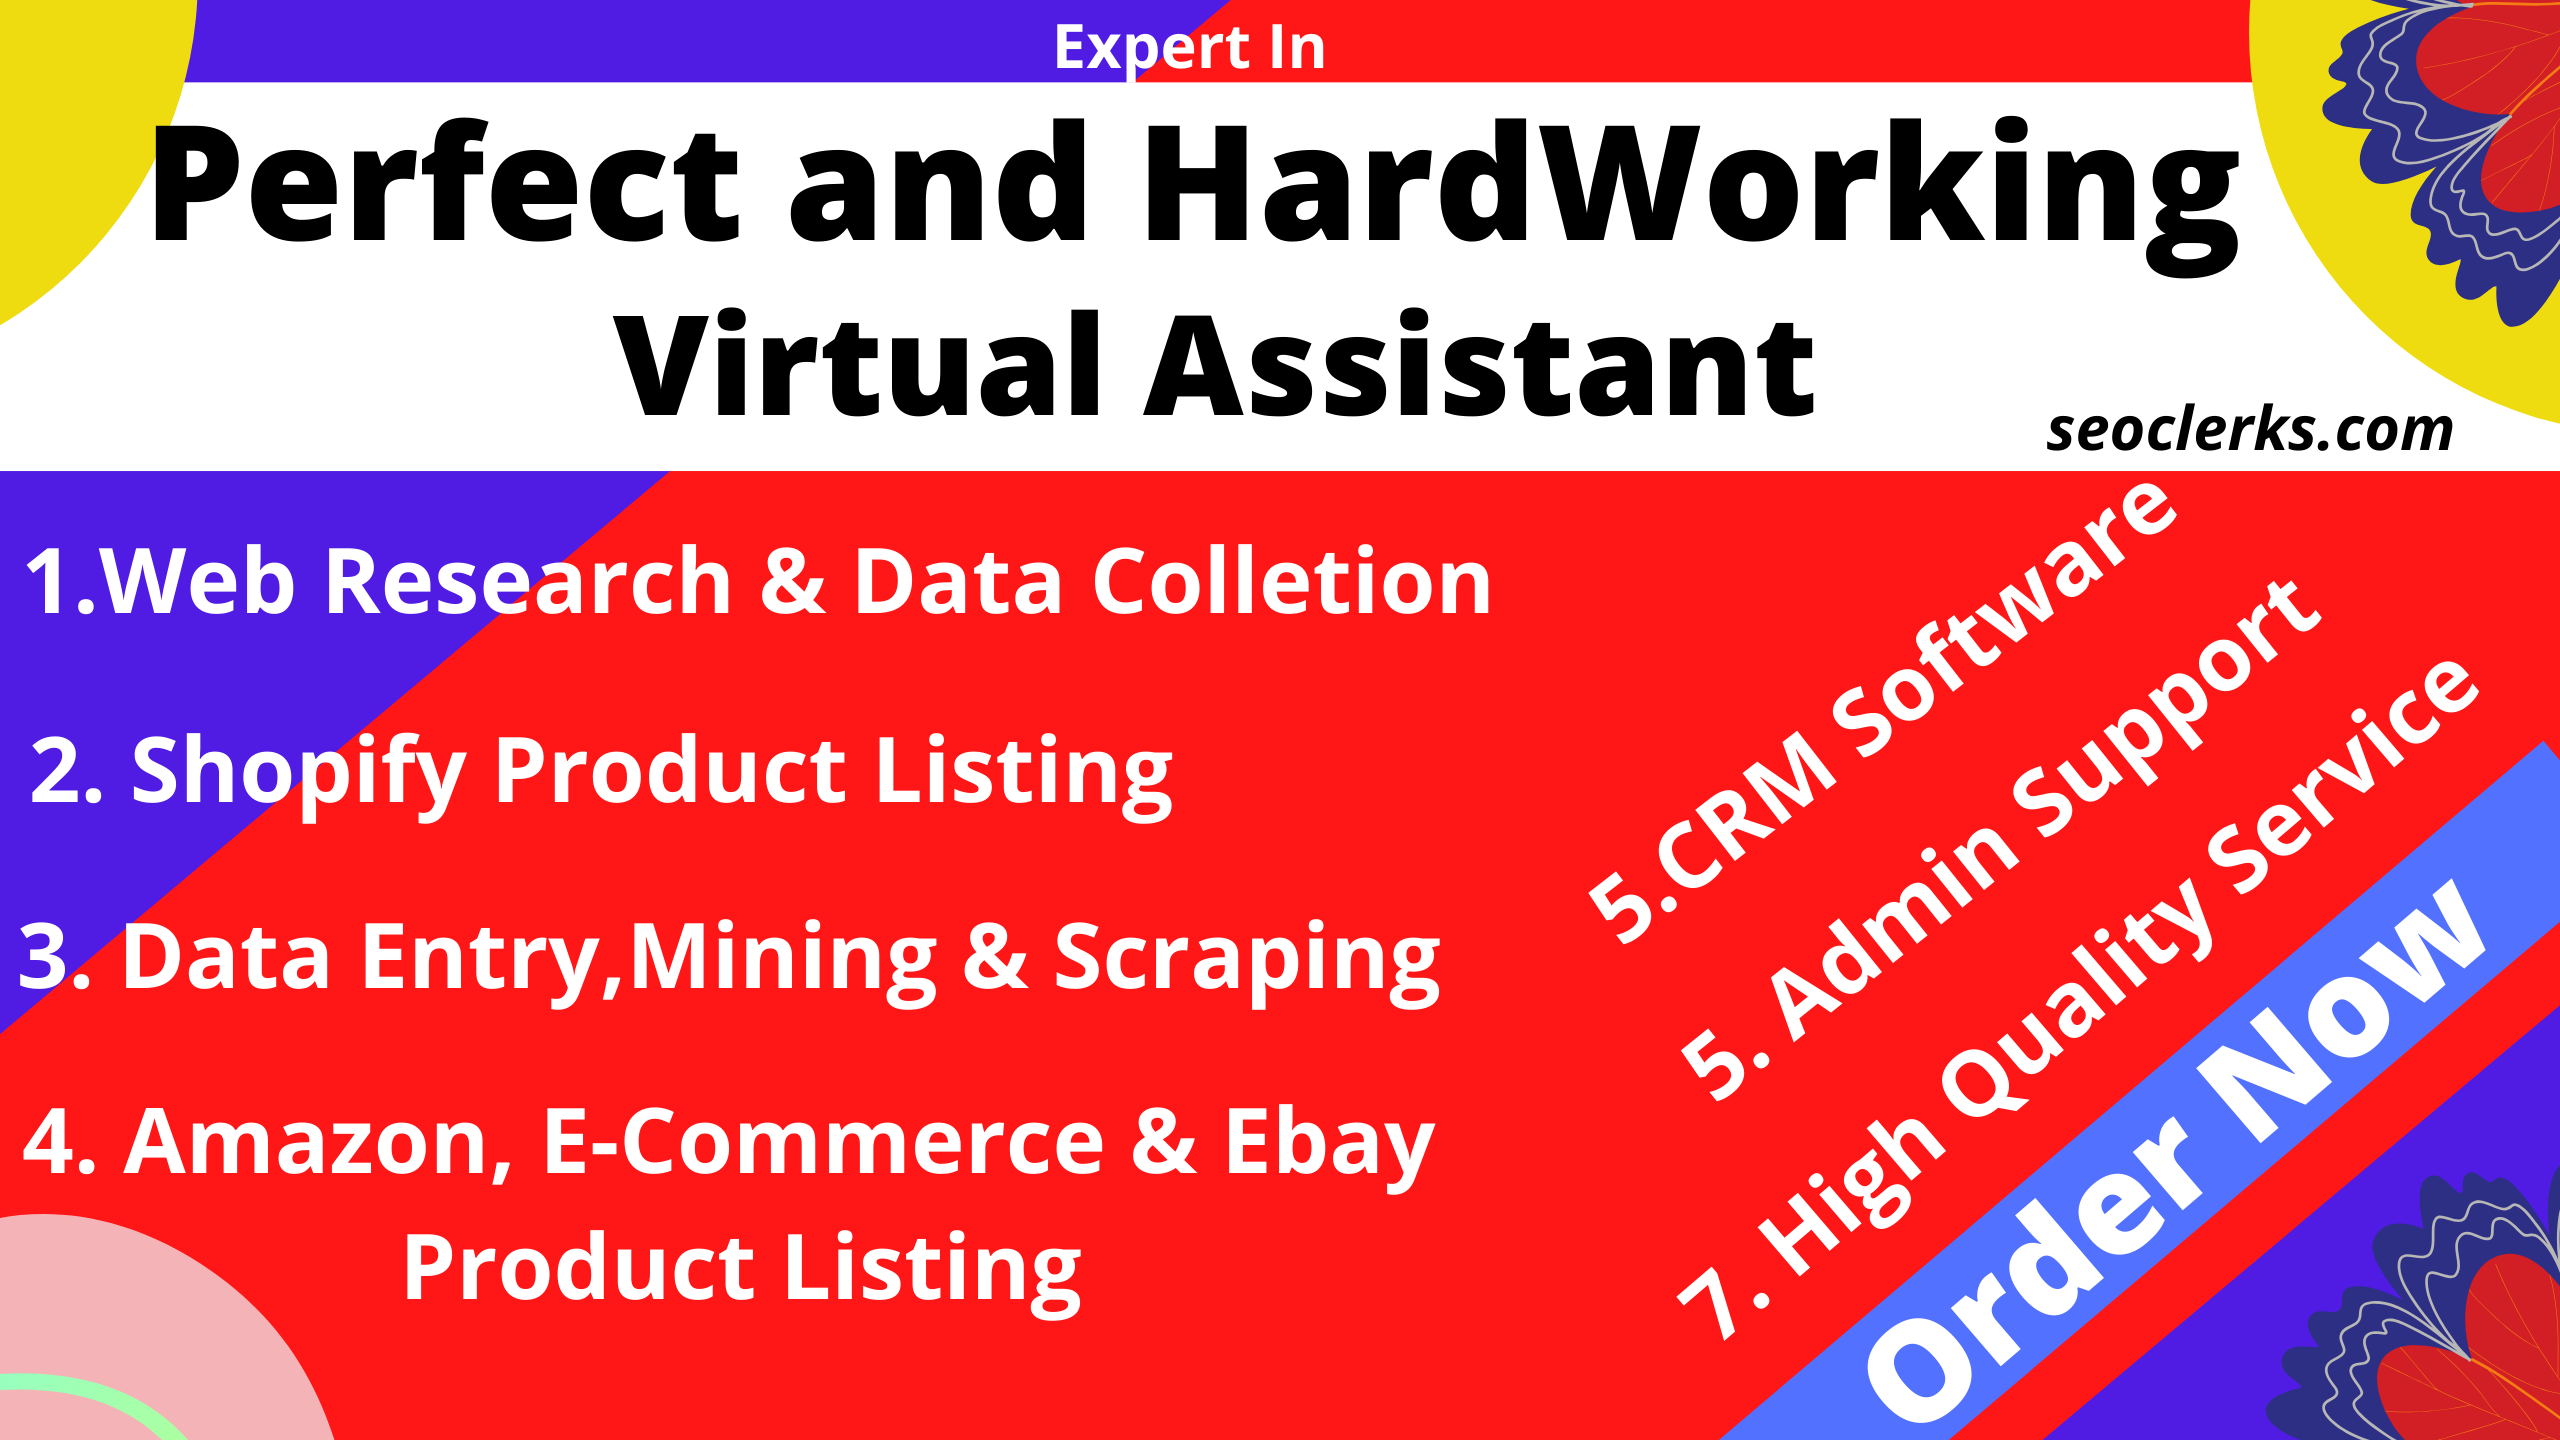 I will be Perfect Vitual Assistant For Your Business upto 5 hours